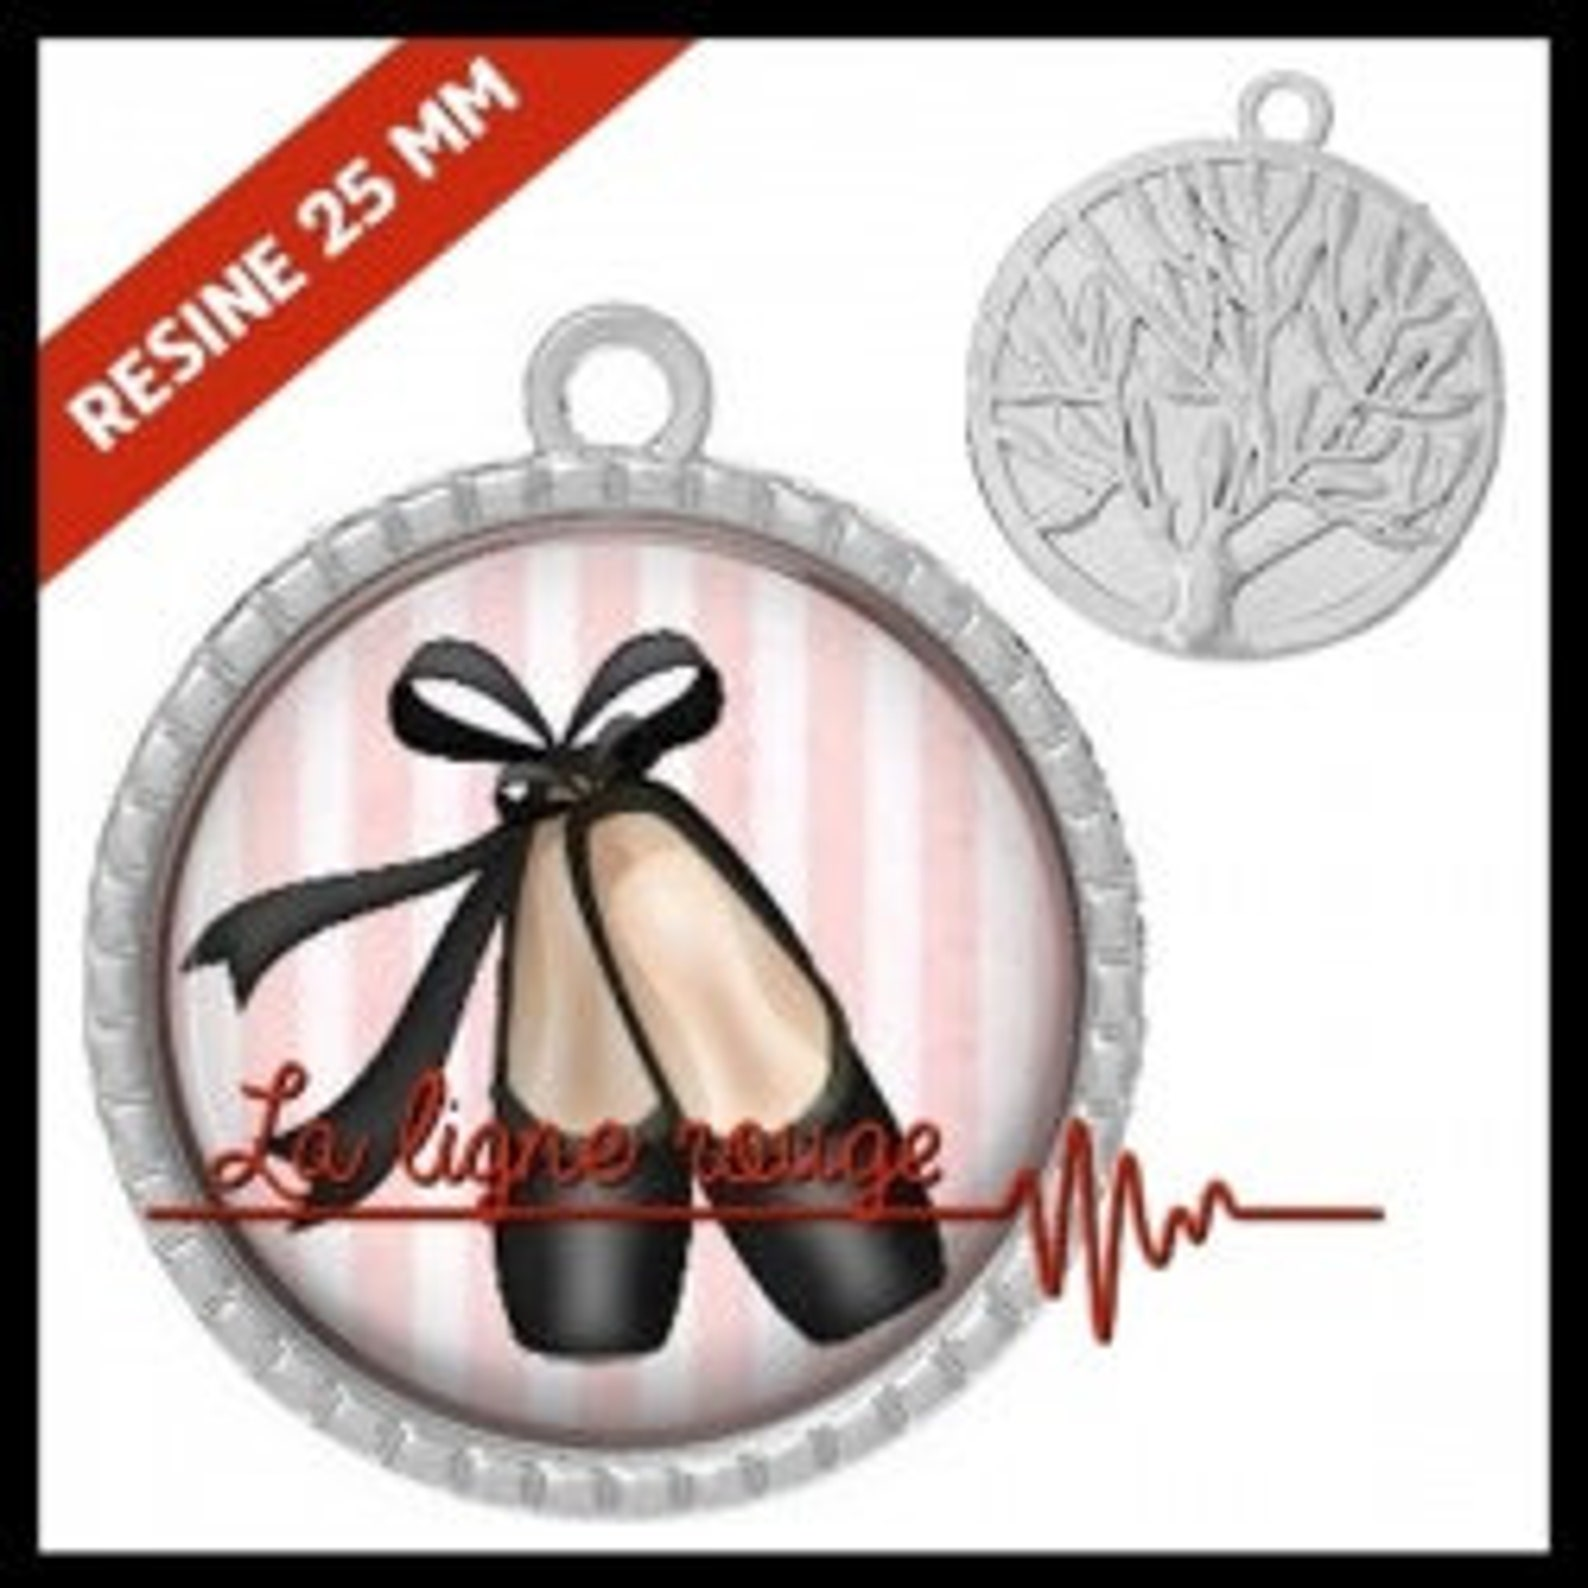 to choose from-with or without support cabochon, resin or glass, silver or bronze - ballet shoes (9300) - gift birthday christma